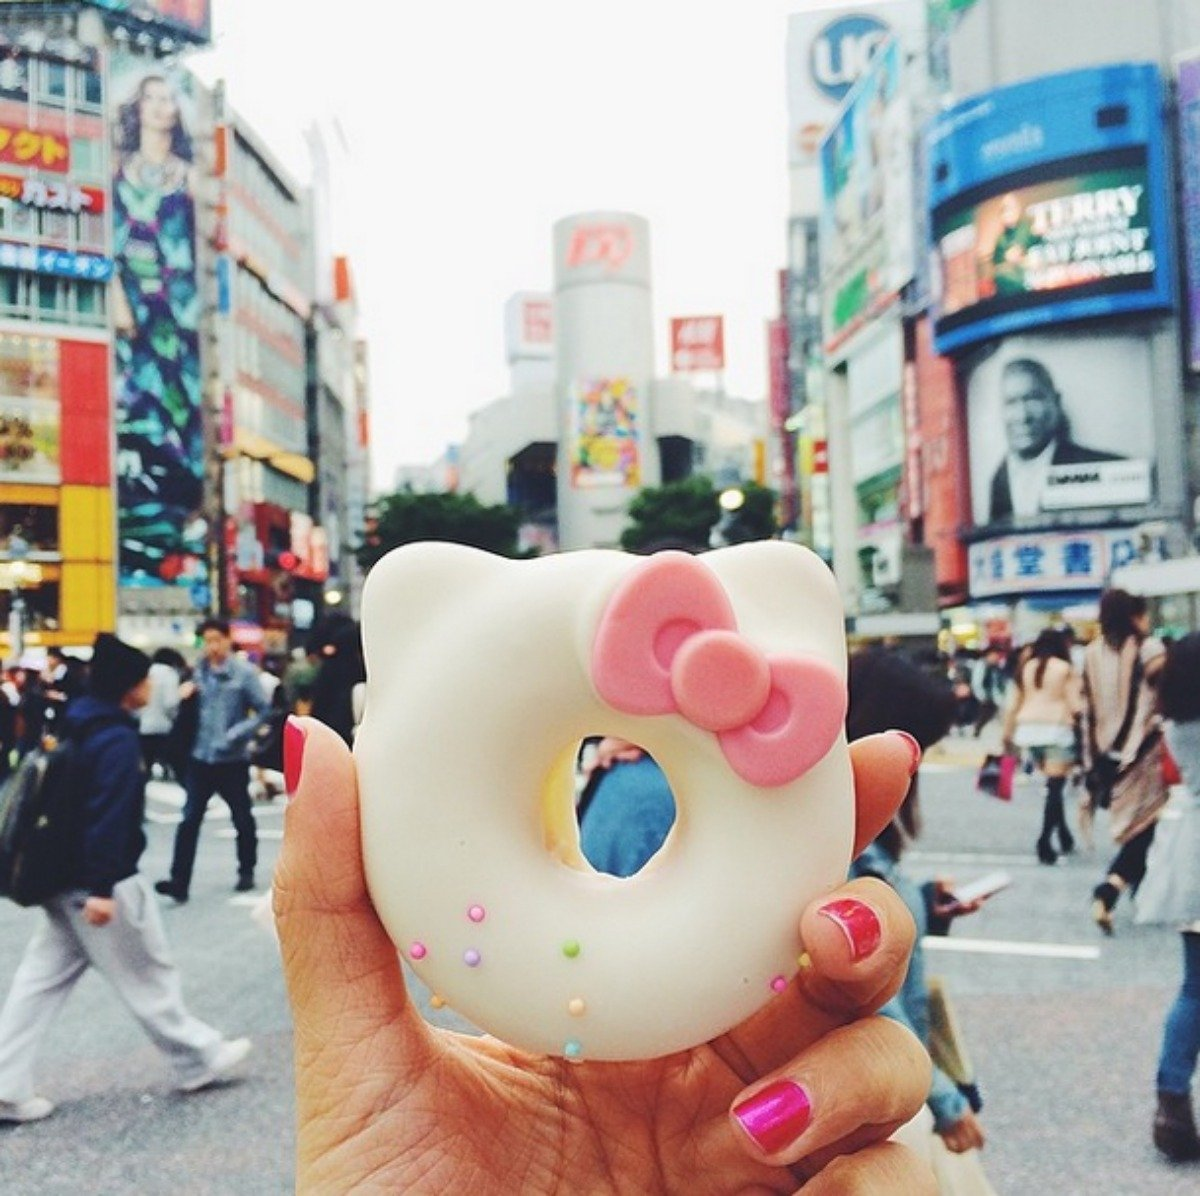 hello-kitty-donut-at-the-shibuya-crossing-in-tokyo-japan-this-was-too-cute-to-pass-up-from-the-basement-of-hikarie-building-one-street-away-from-hachiko